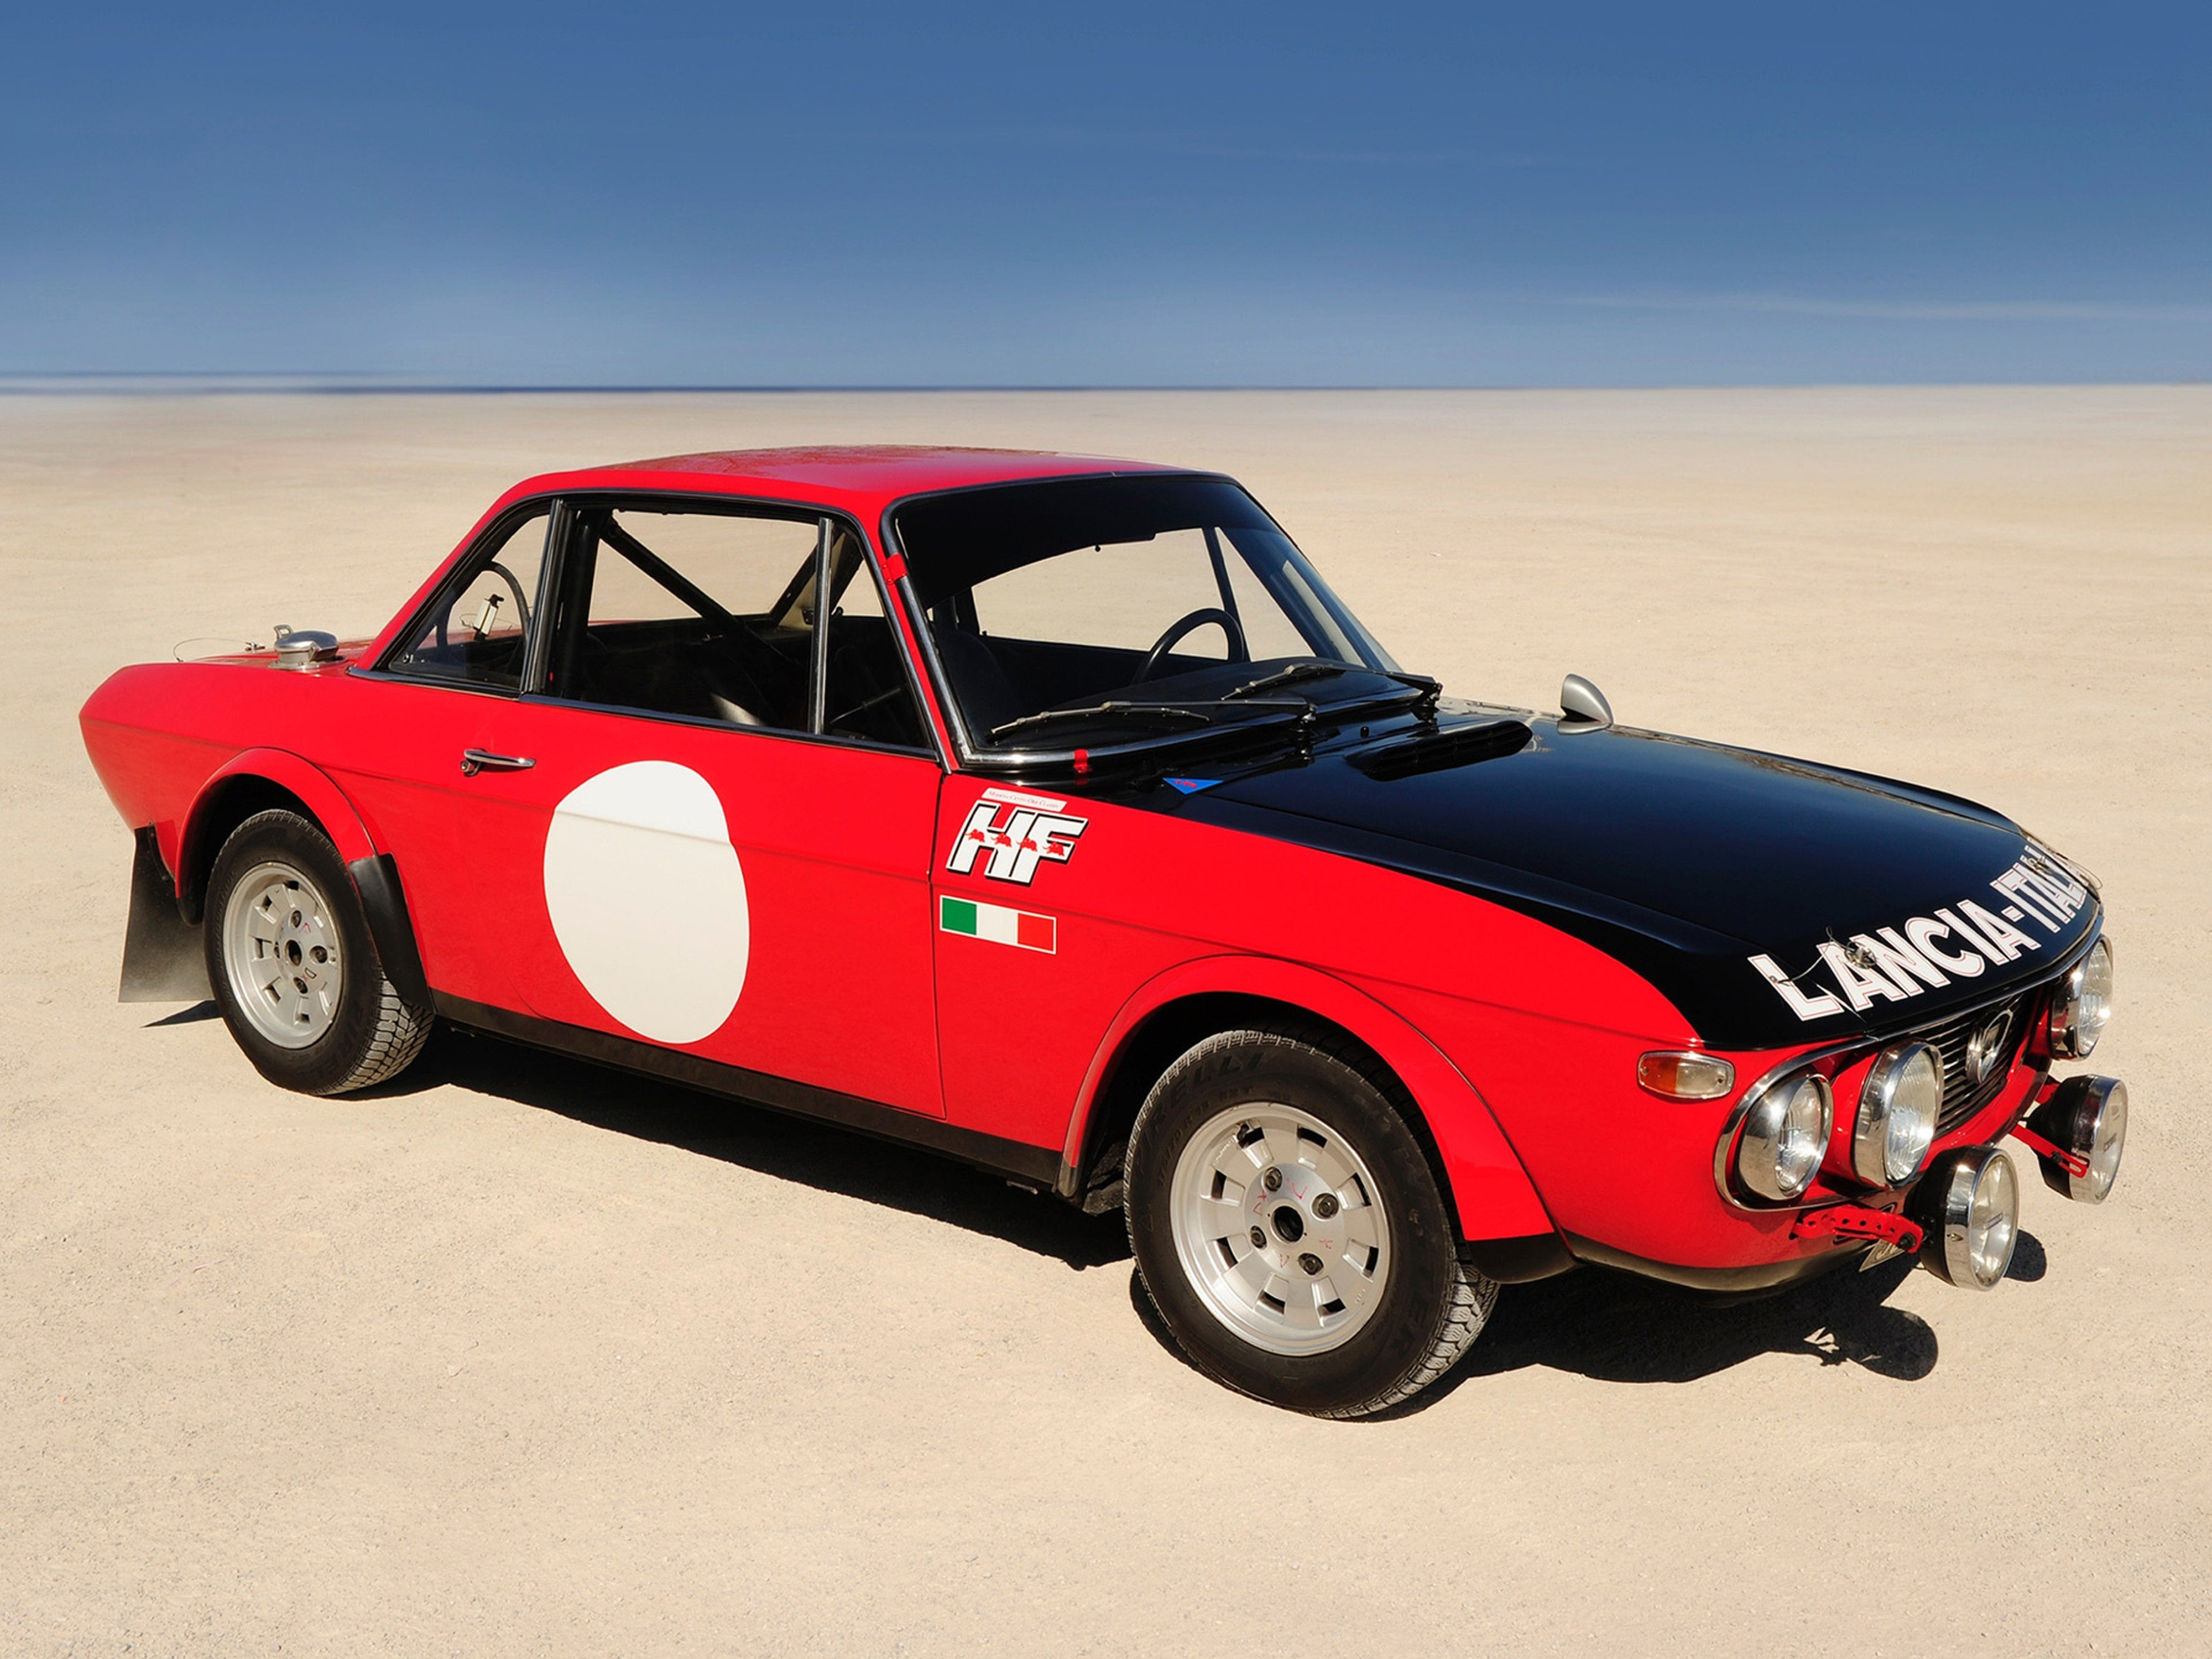 1970 Lancia Fulvia Coupe 1600HF Corsa Race Rally Car ...